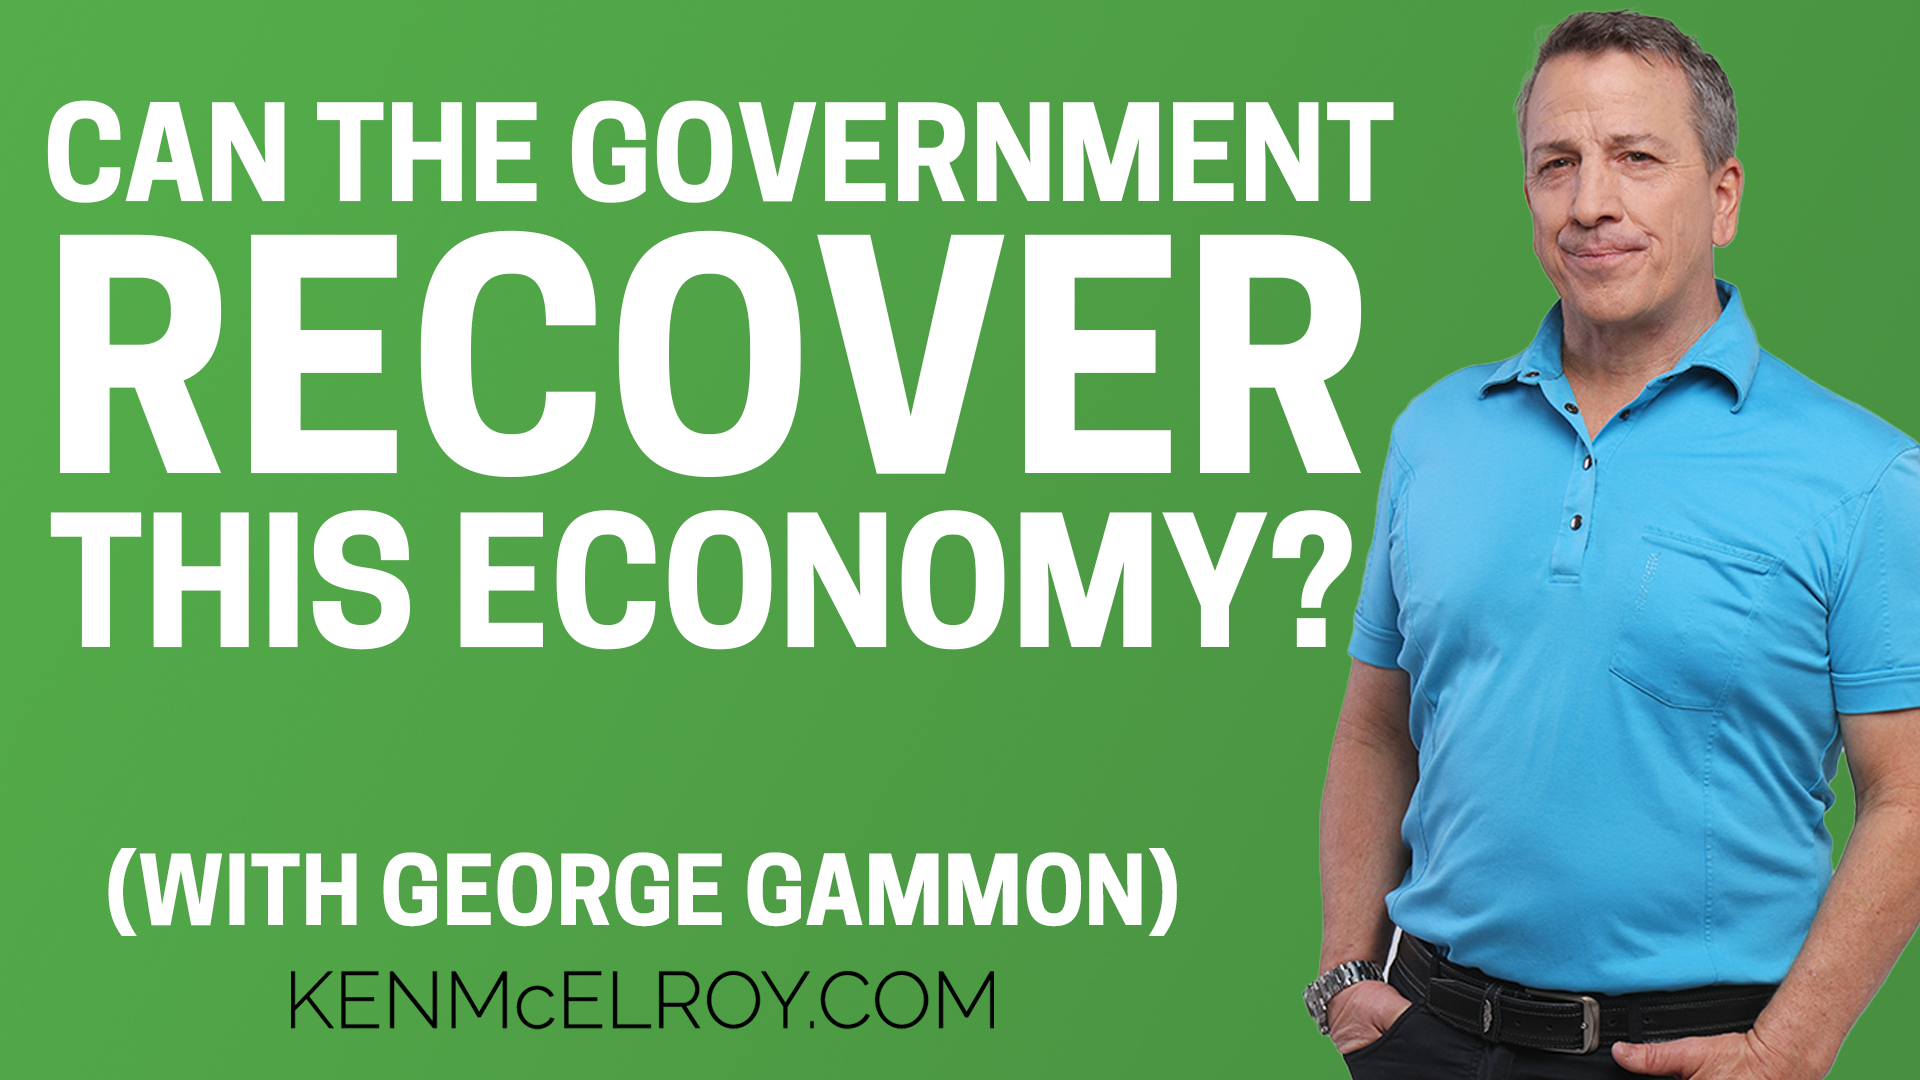 2021 6 15 KM George Gammon Podcast 1 Thumbnail | Ken McElroy Image